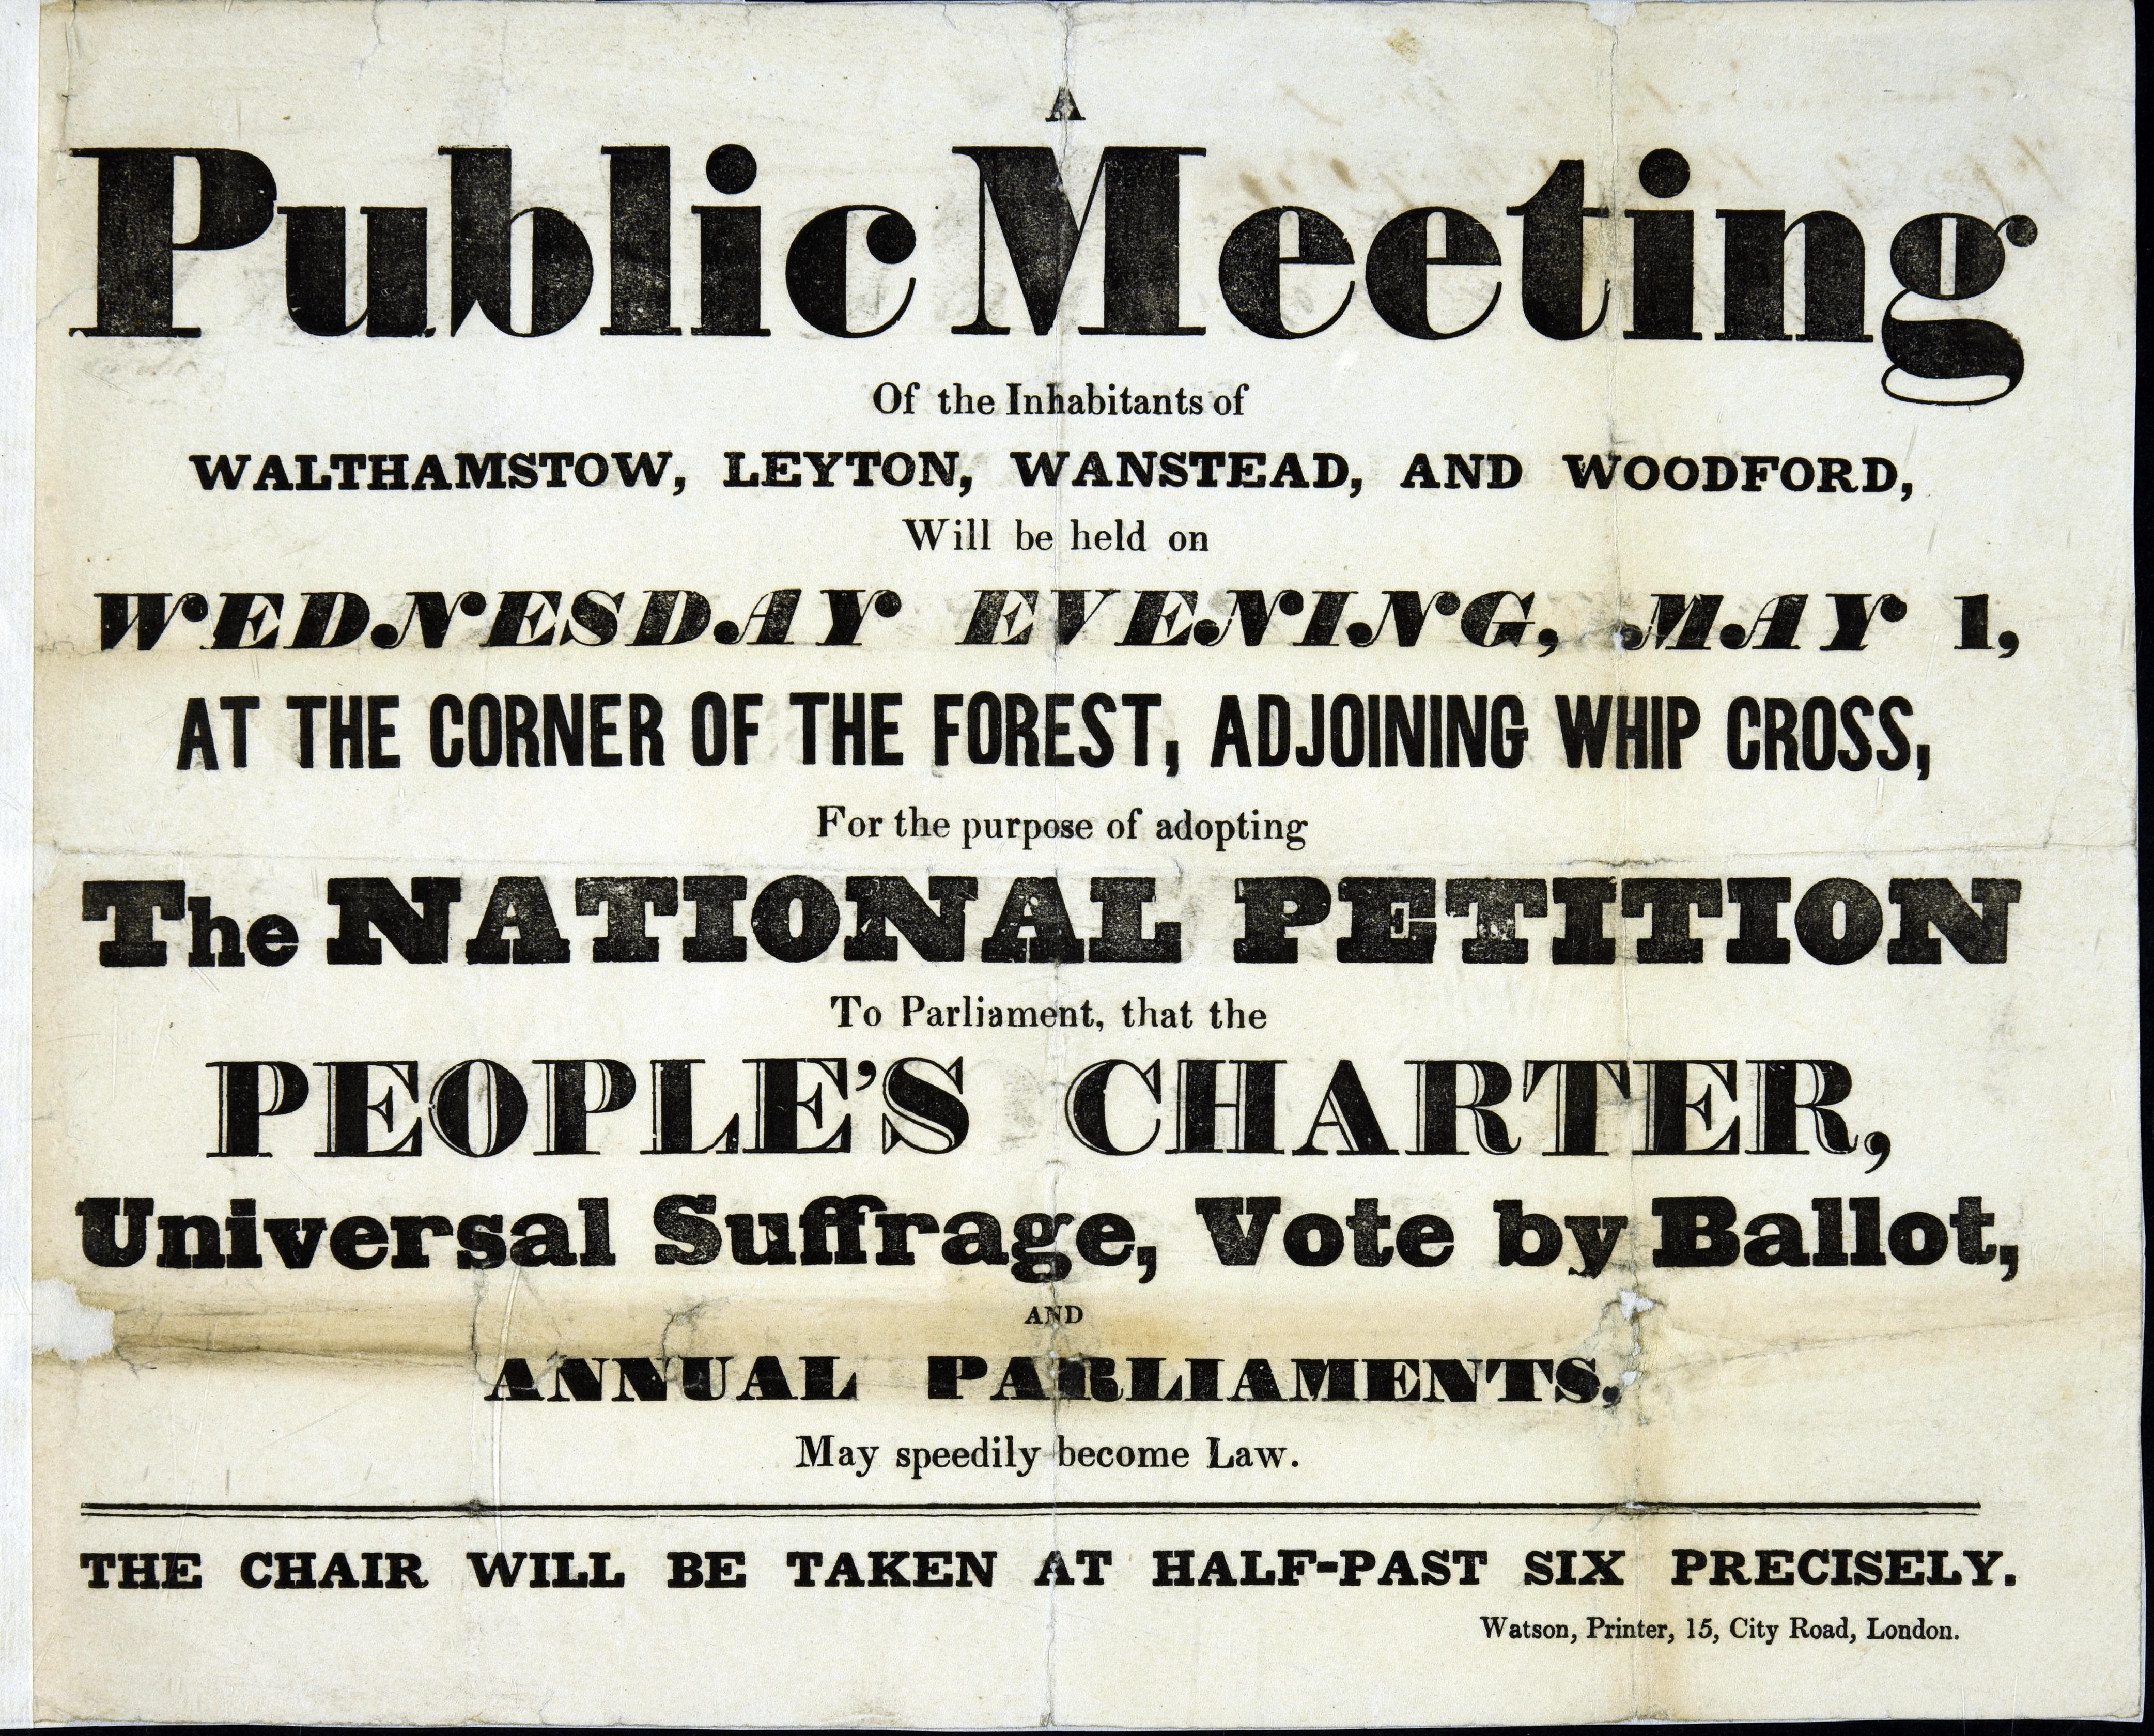 Public meeting near Whip (Whipp's) Cross, to adopt universal suffrage 1839-1841 EXT3/36